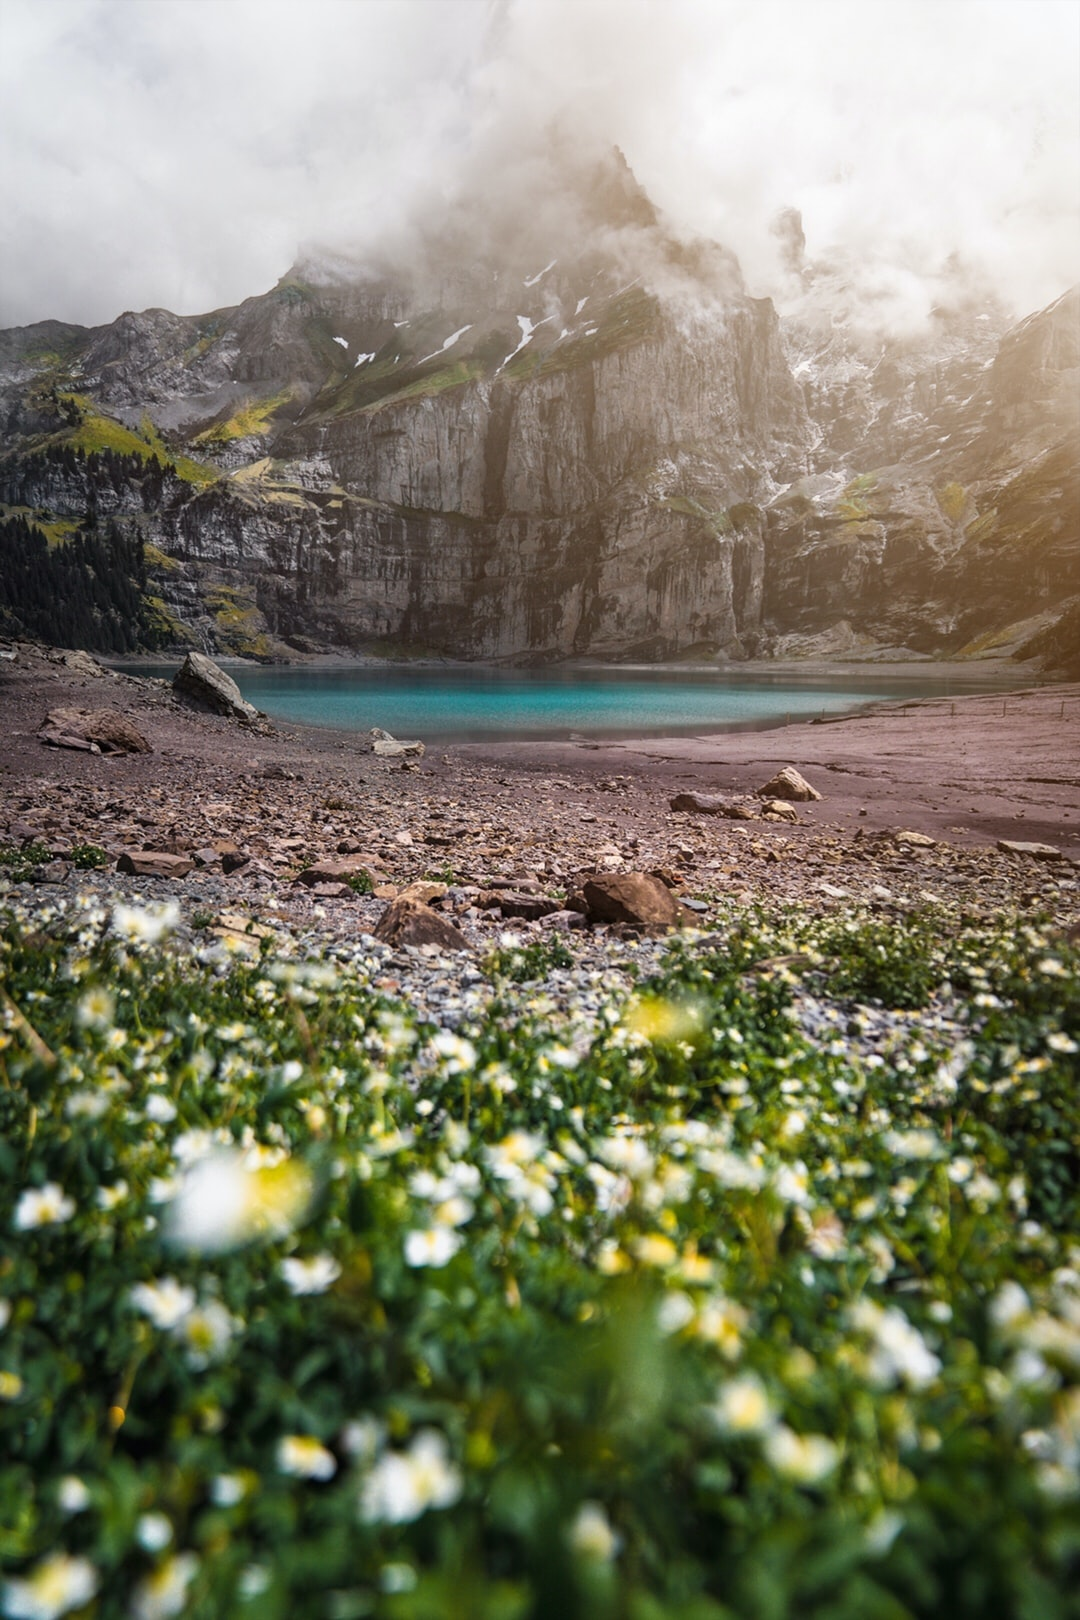 A peaceful place in the Bernese Alps